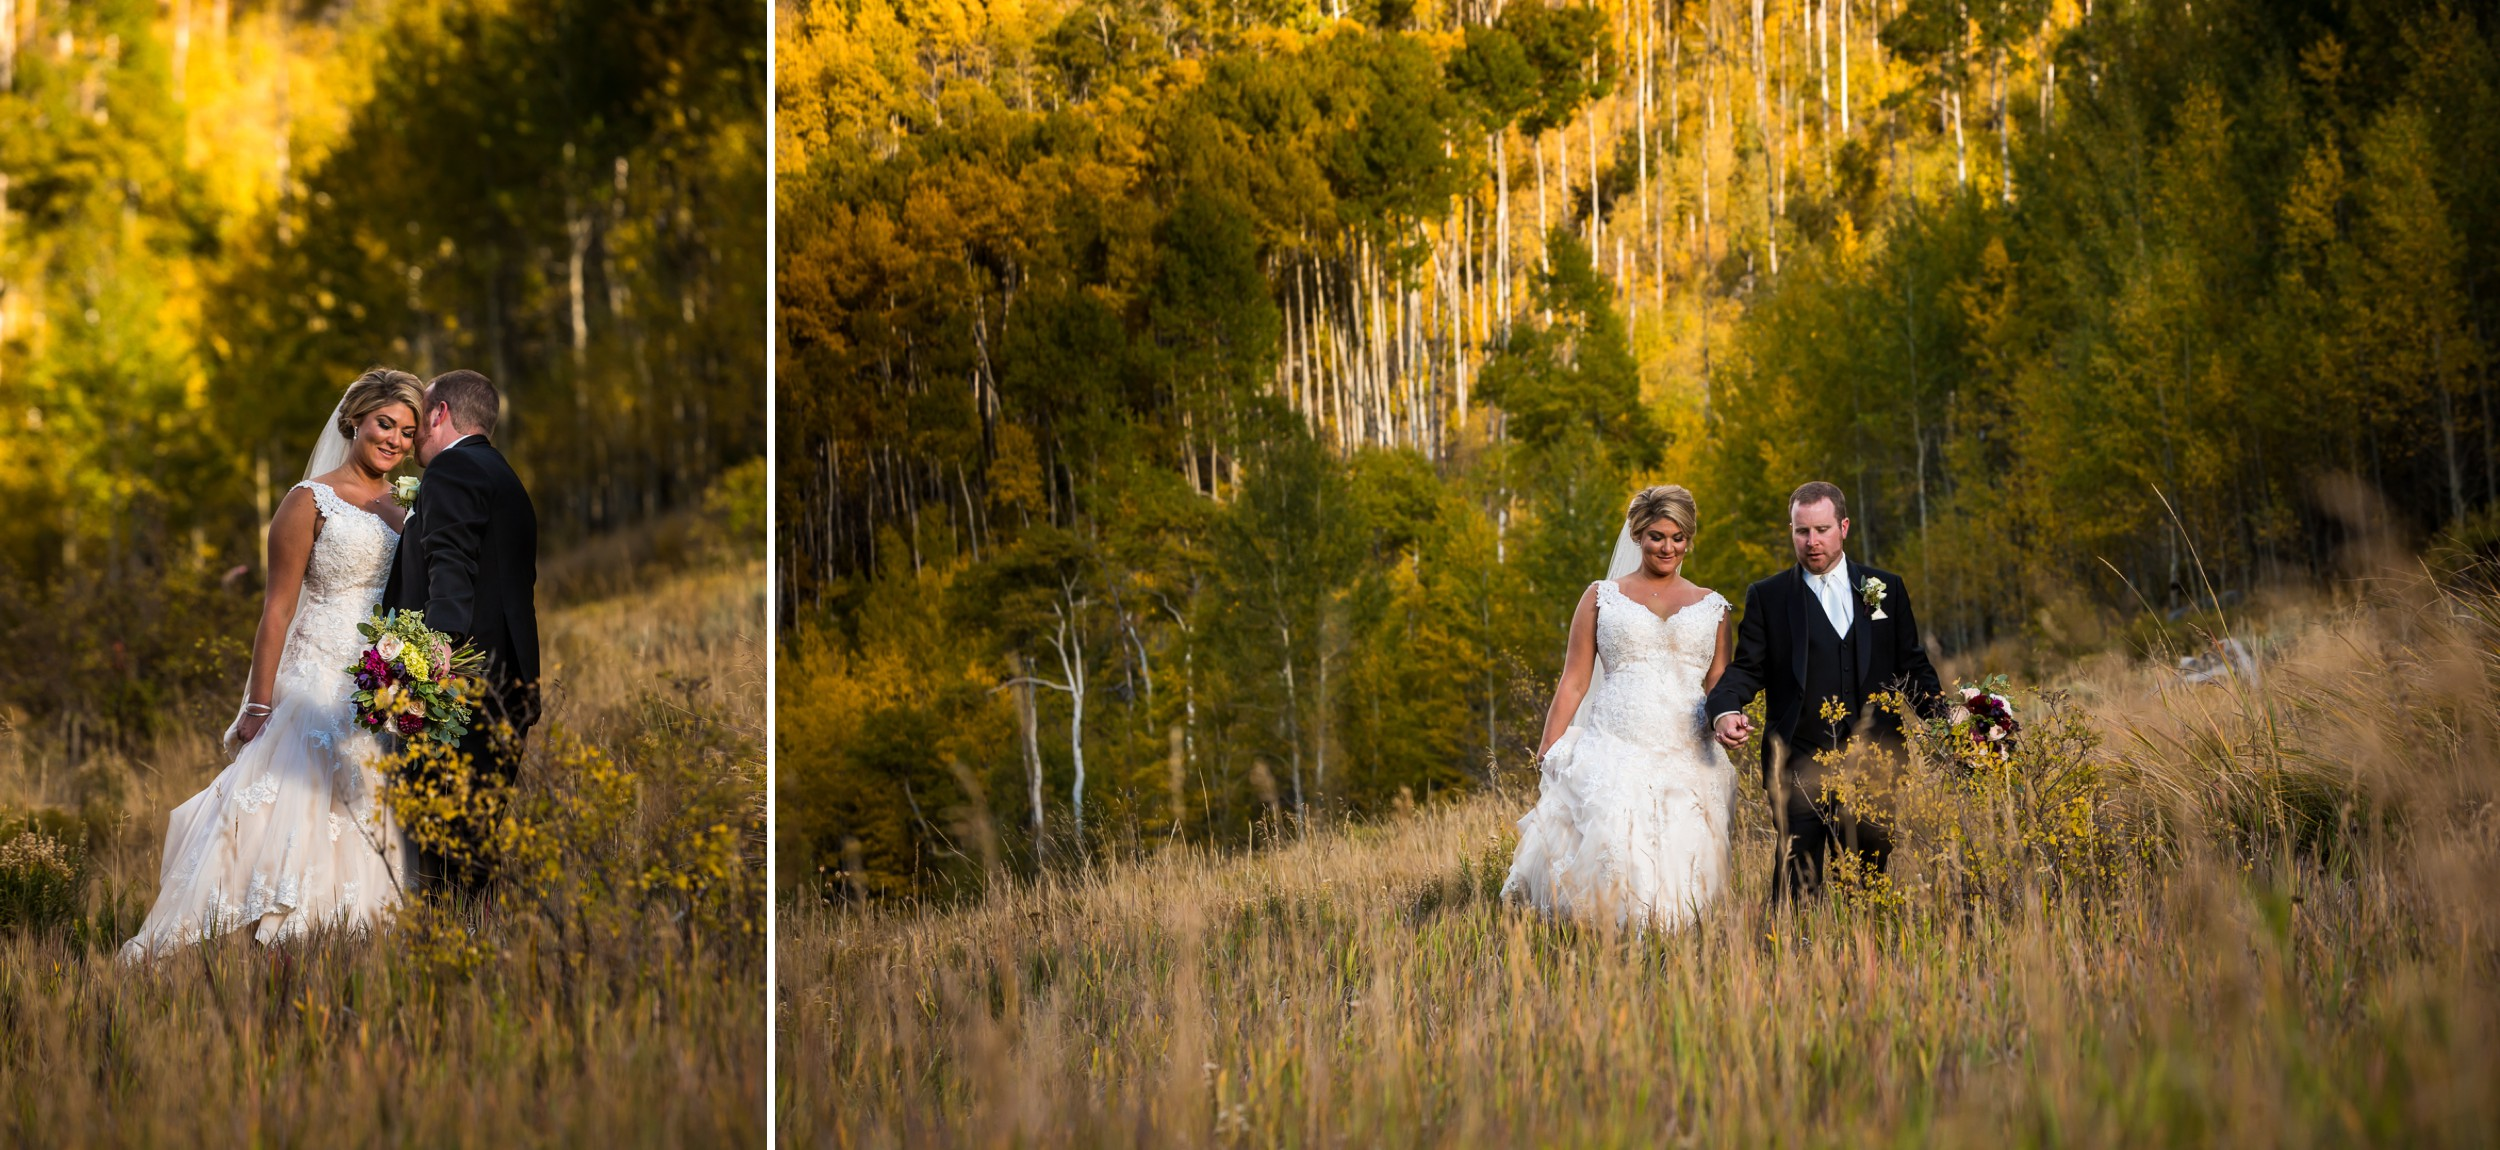 Vail_Golf_and_Nordic_Clubhouse_Wedding_Vail_Wedding_Photographer_Kristopher_Lindsay_Photography_ 13.jpg